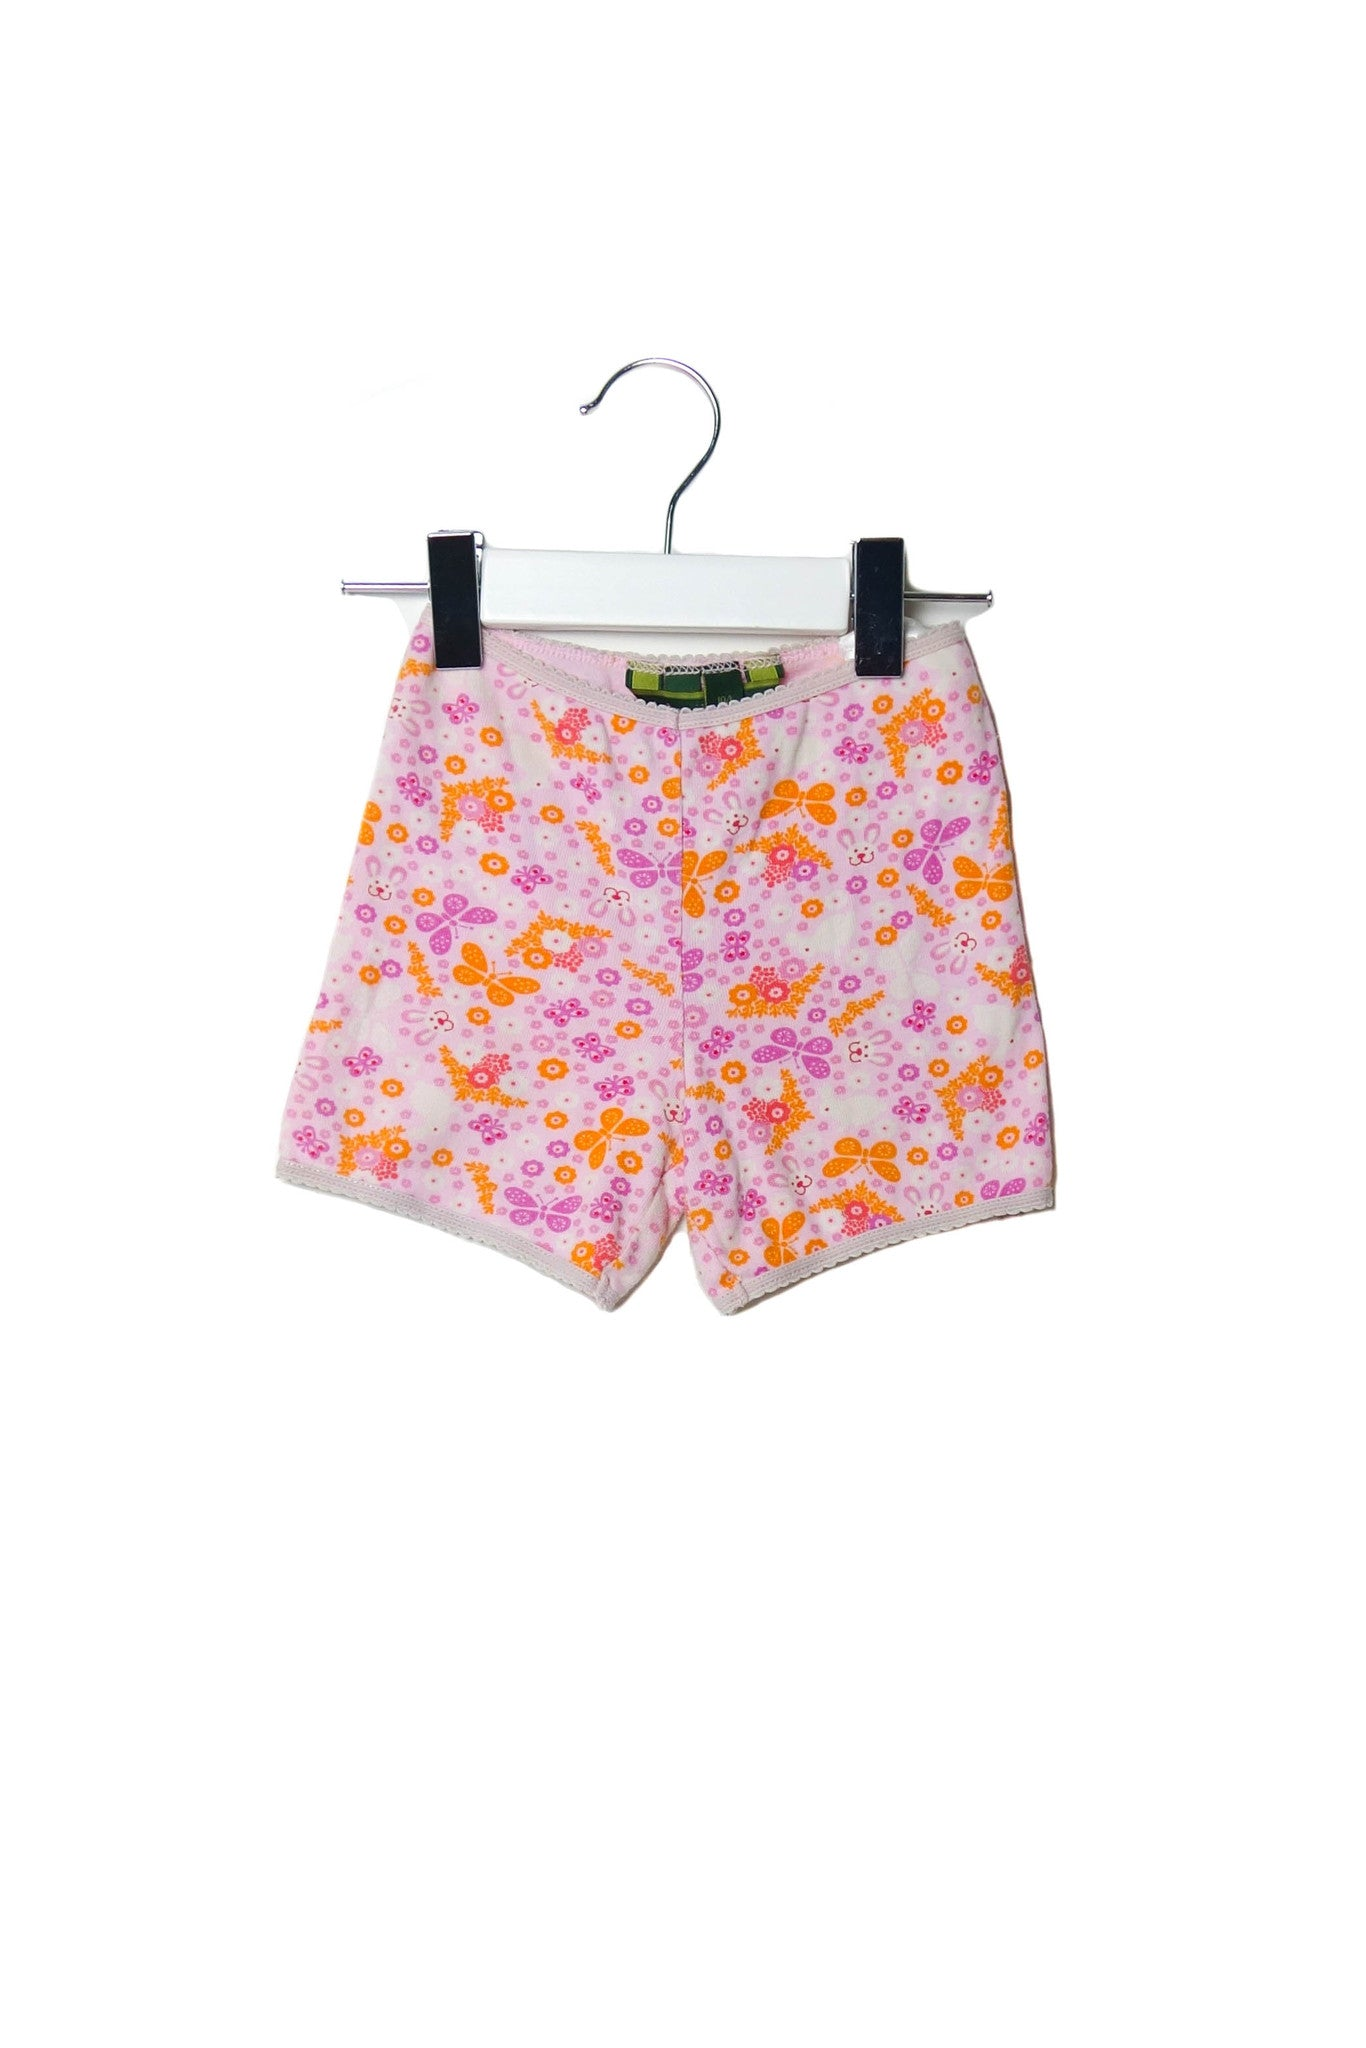 10002173 Oilily Kids~Shorts 4T at Retykle